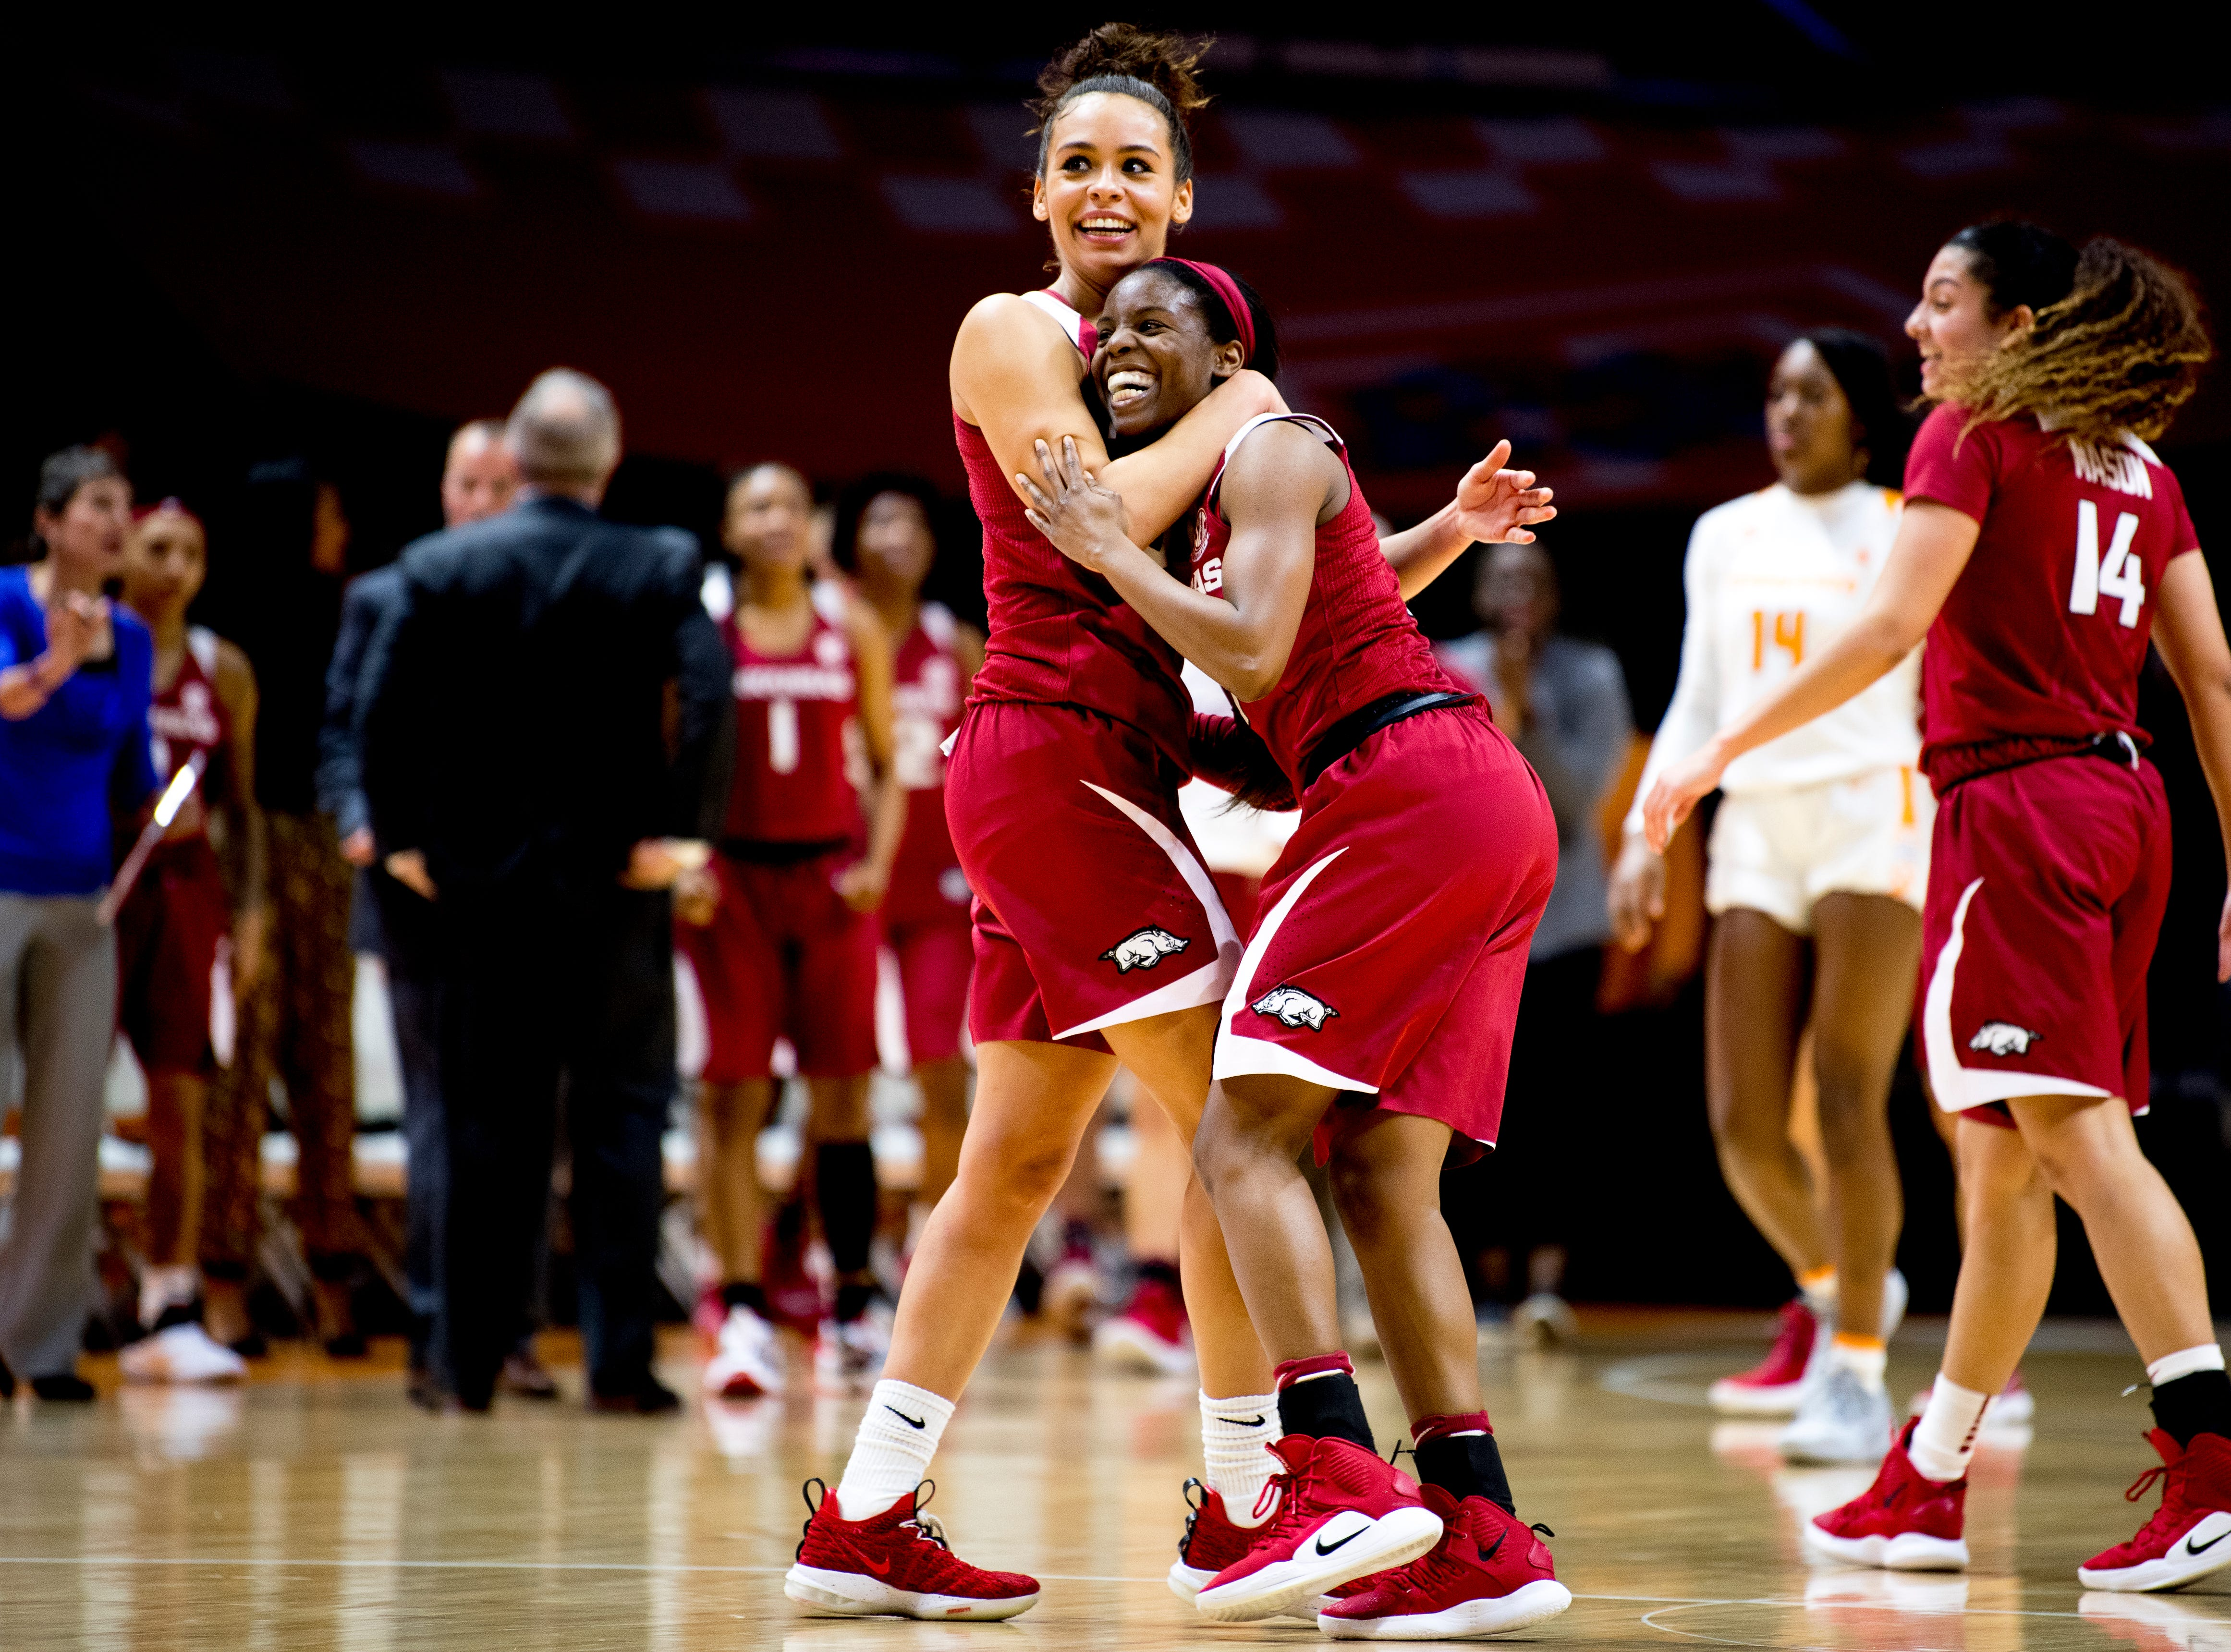 Arkansas guard Chelsea Dungee (33) celebrates with Arkansas guard Malica Monk (3) on her point to put the team ahead during a game against Tennessee at Thompson-Boling Arena in Knoxville, Tennessee on Monday, January 21, 2019.